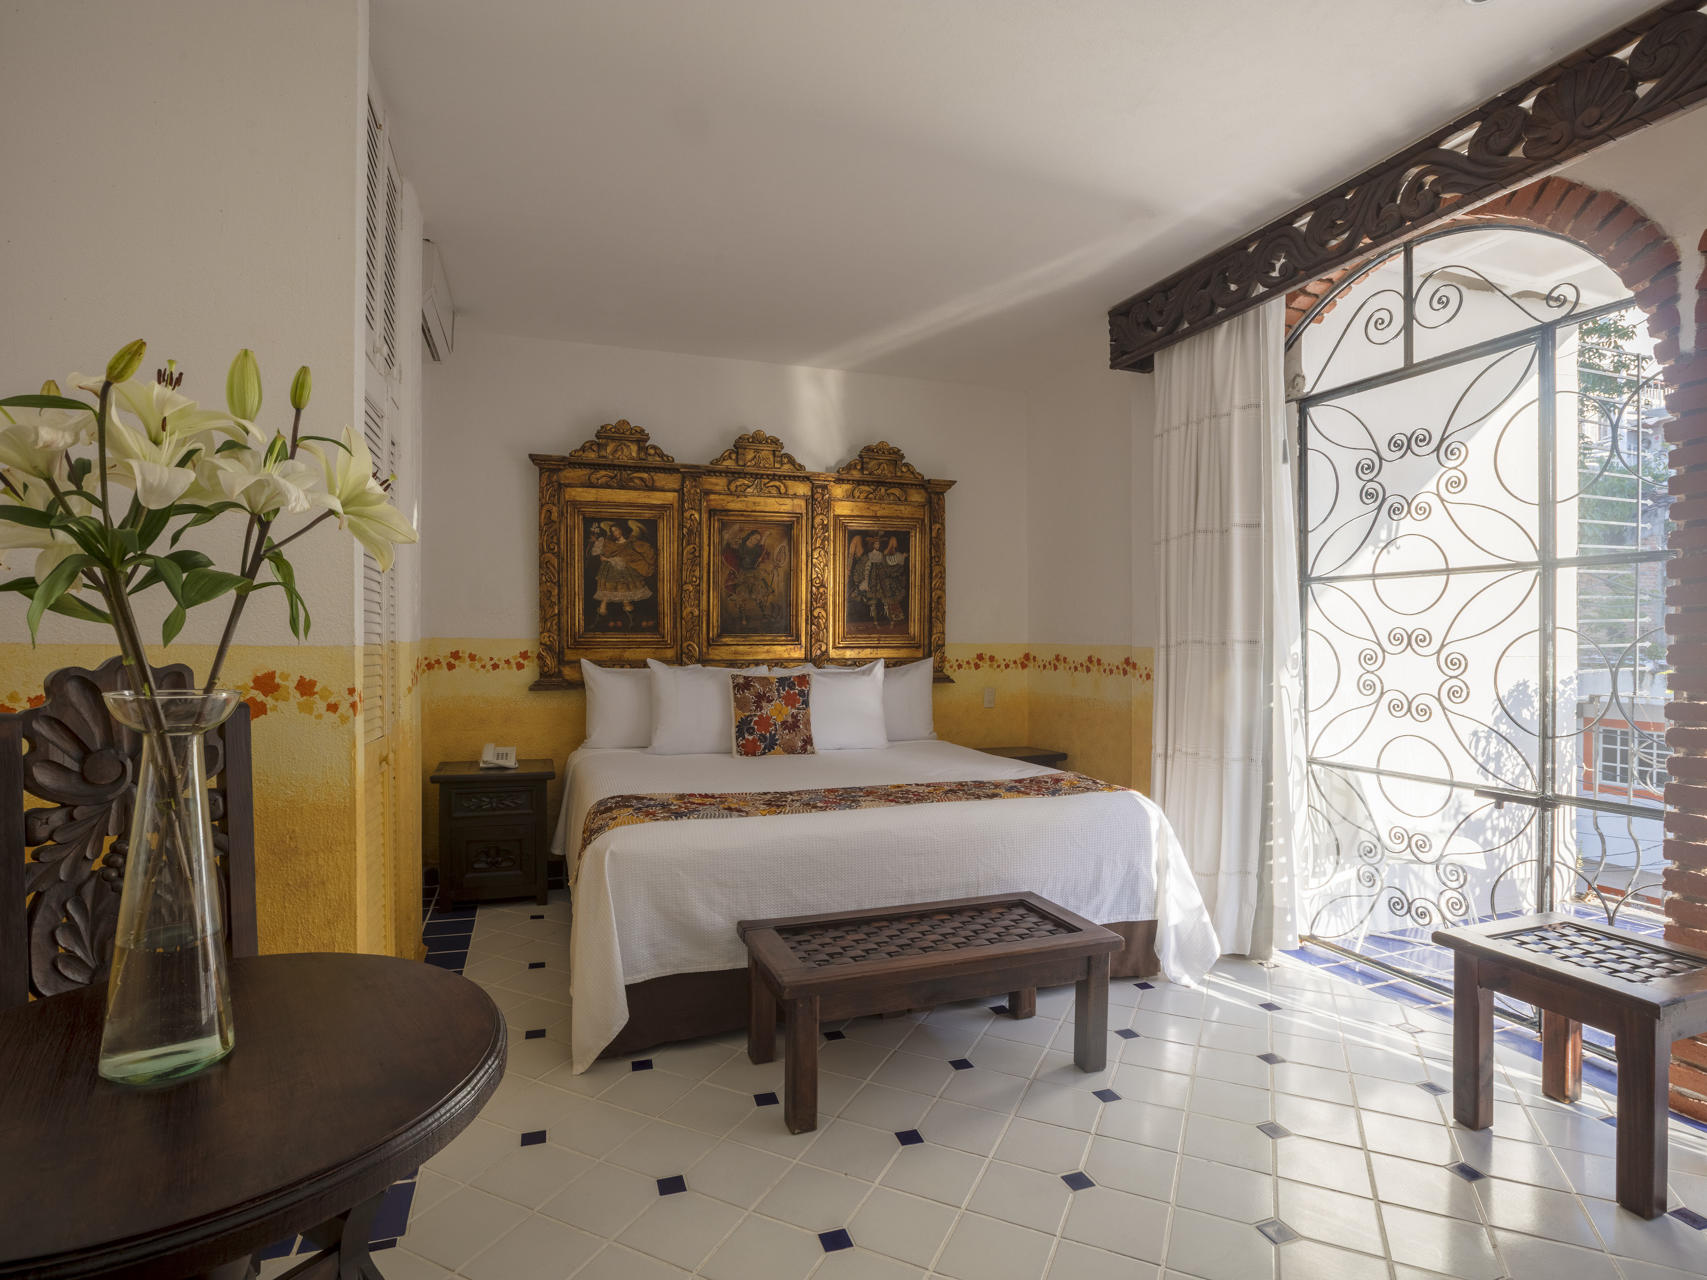 room with one bed, tall windows and table with flowers